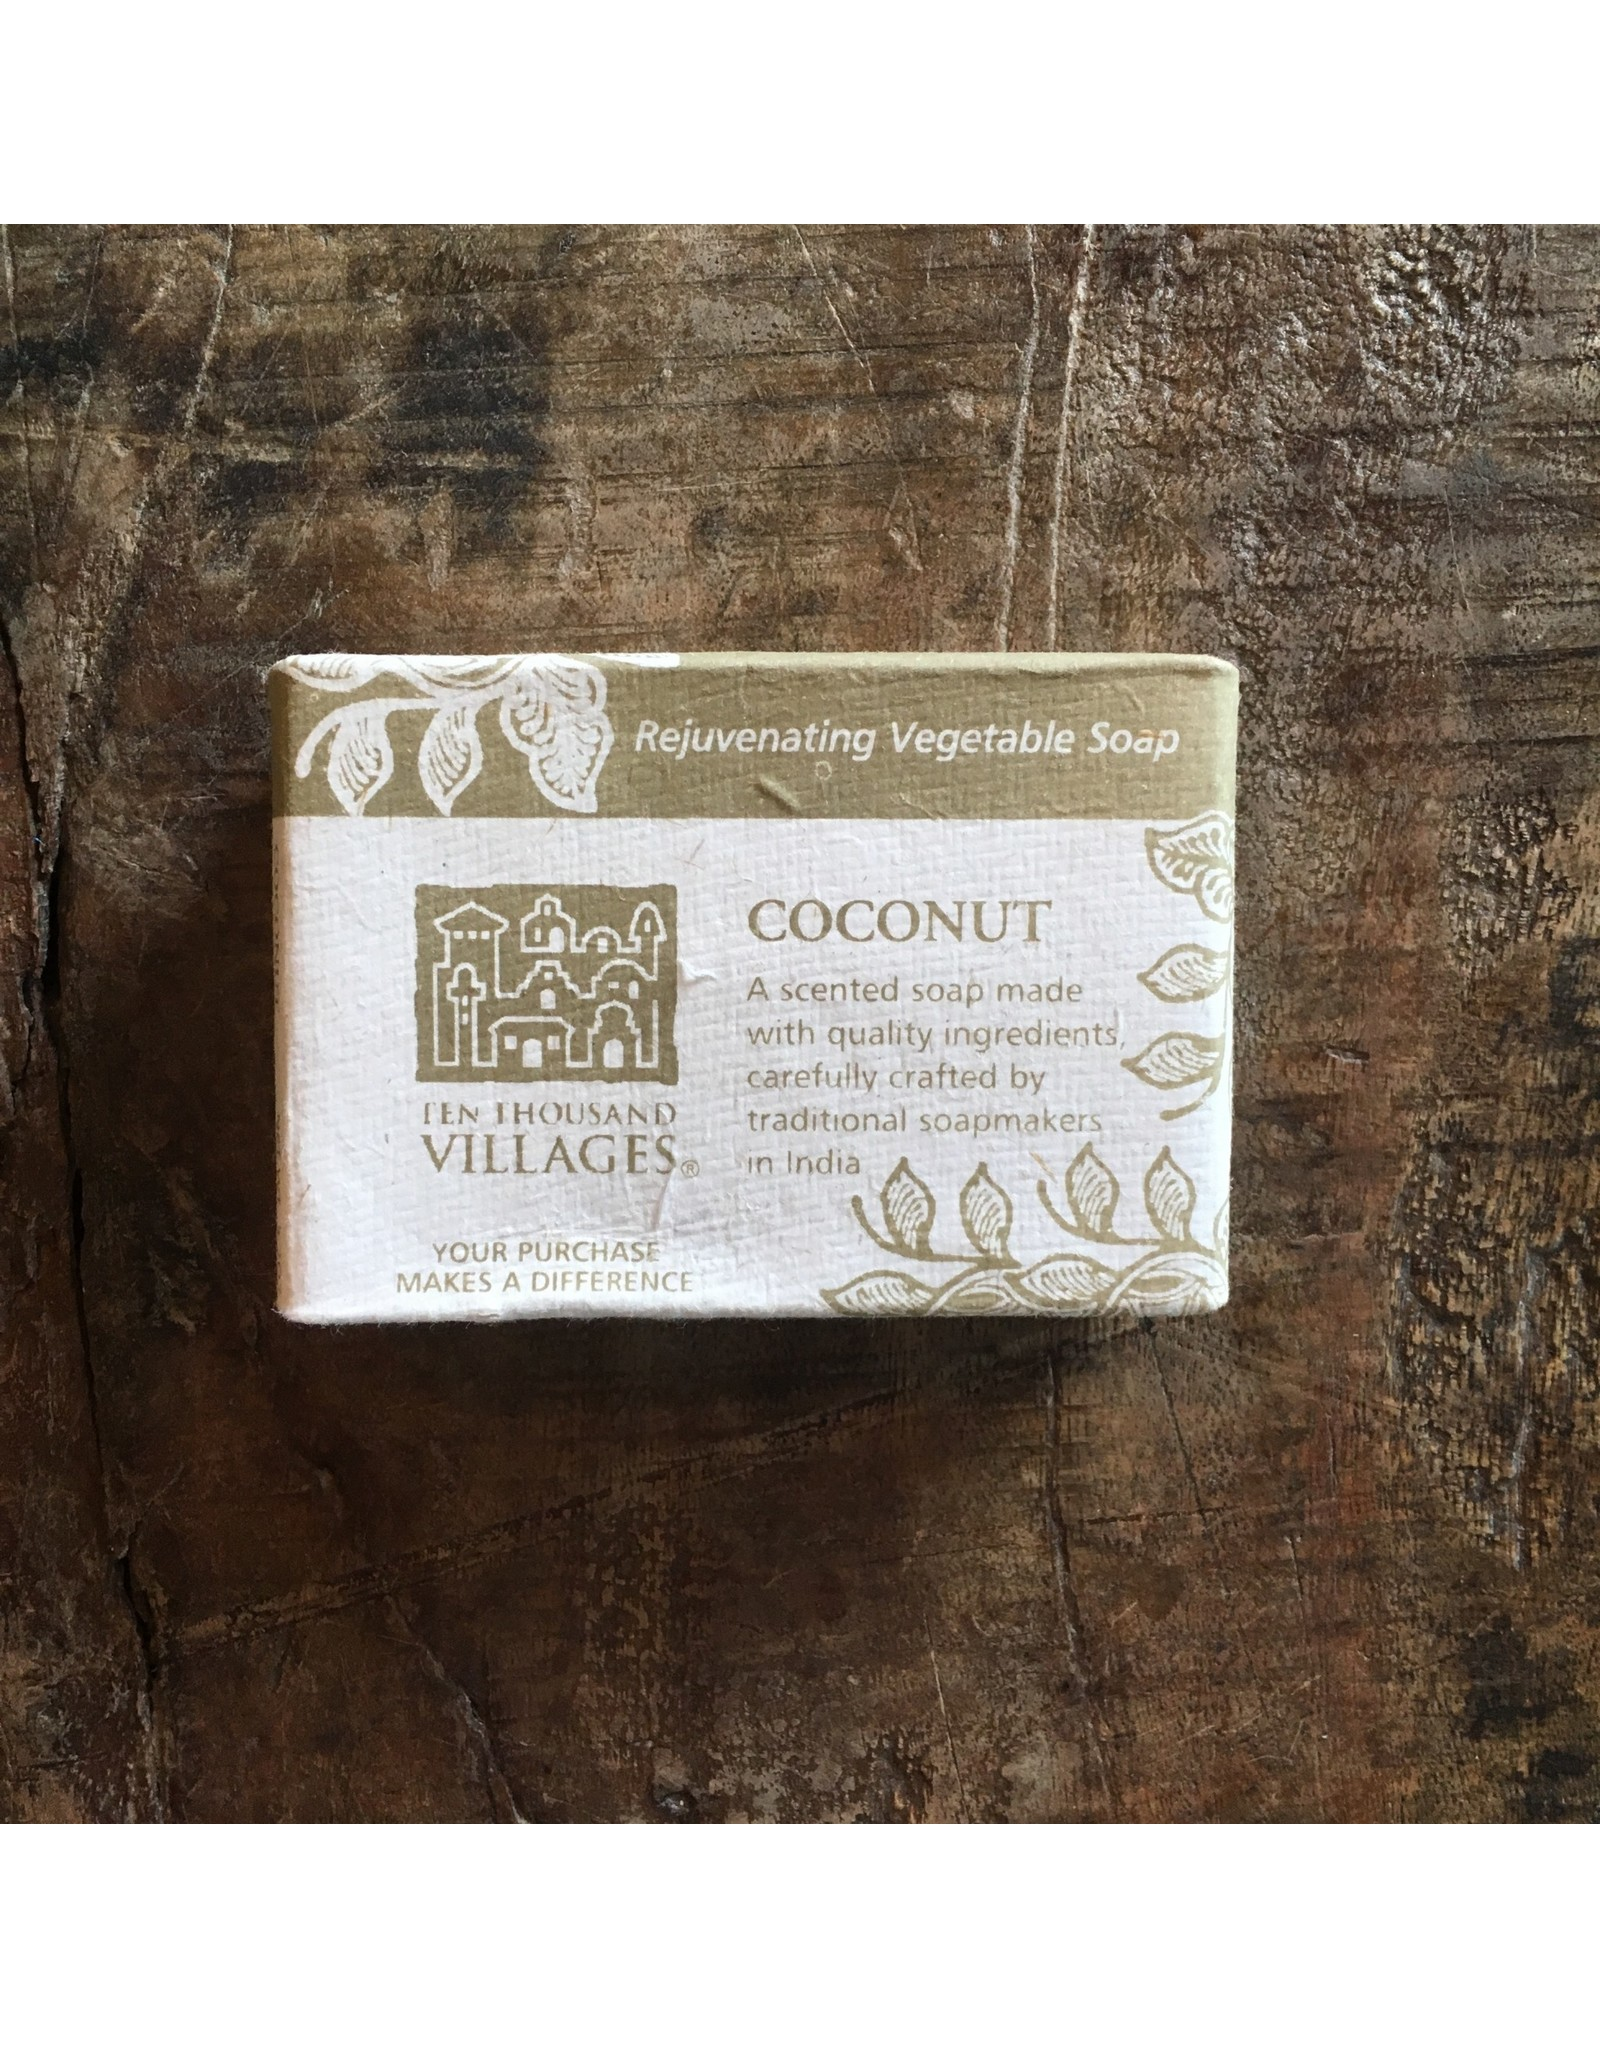 feb17 Vegetable Soap Coconut, India